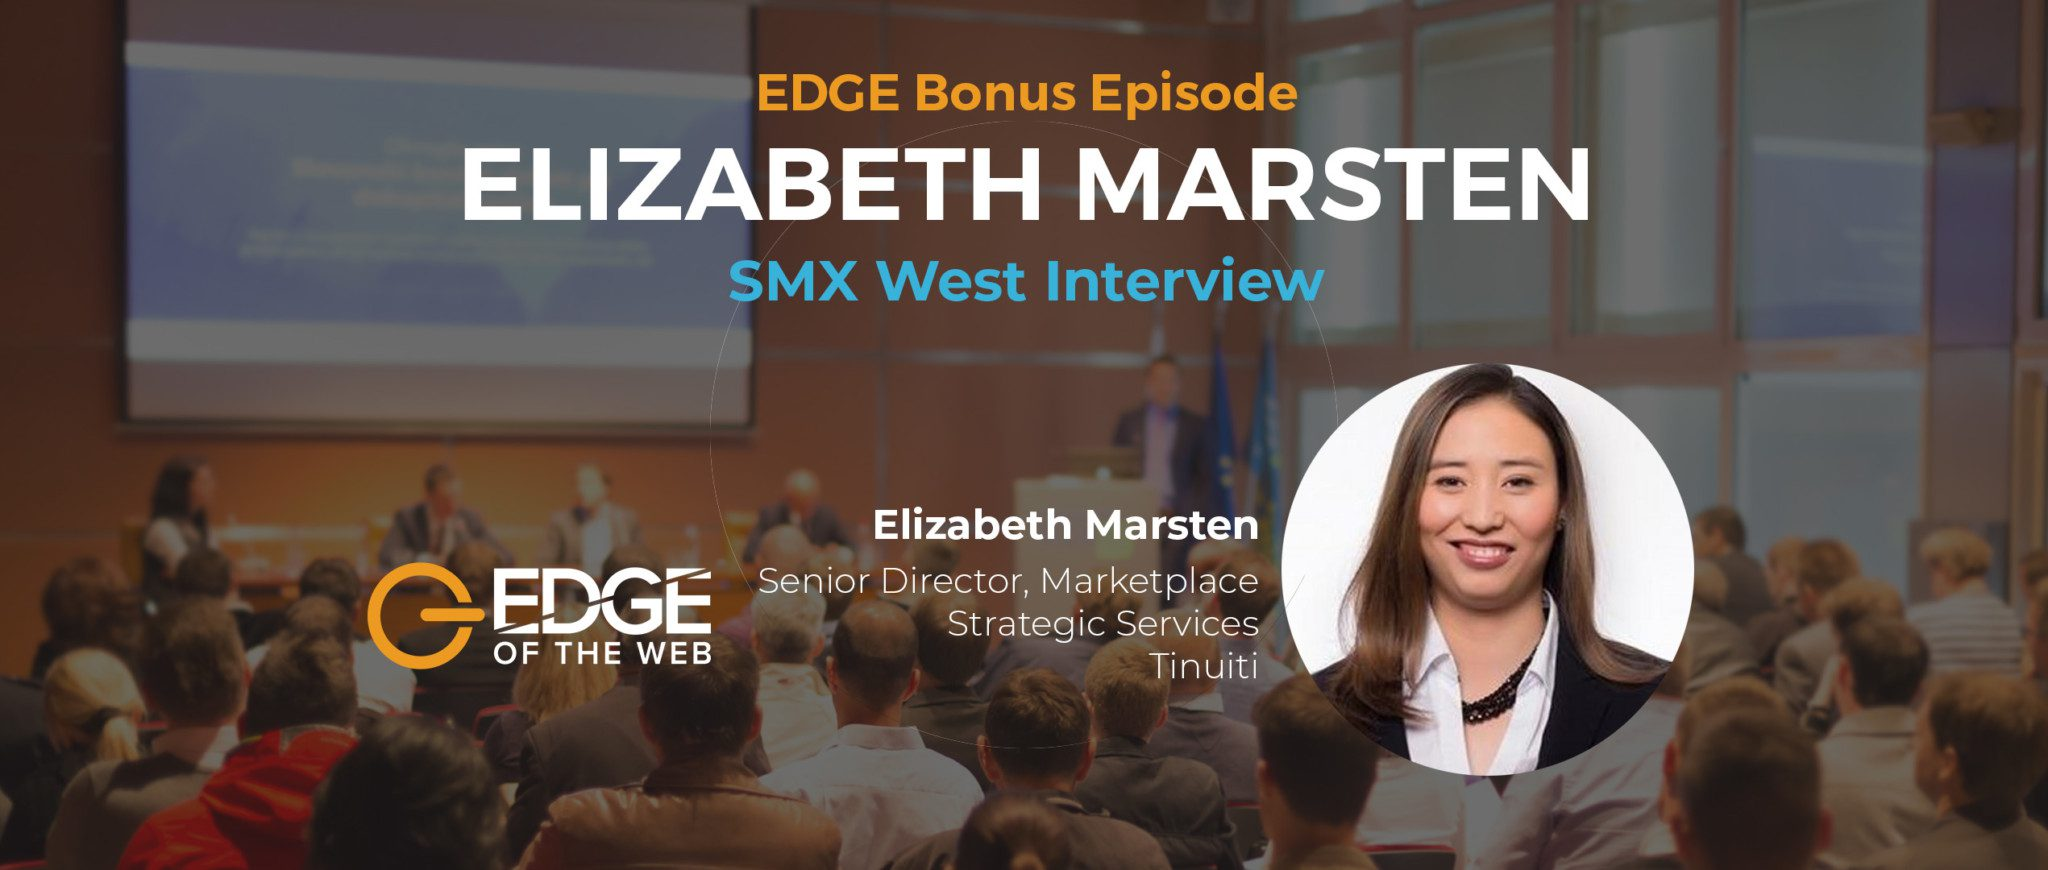 EDGE at SMX West with Elizabeth Marsten